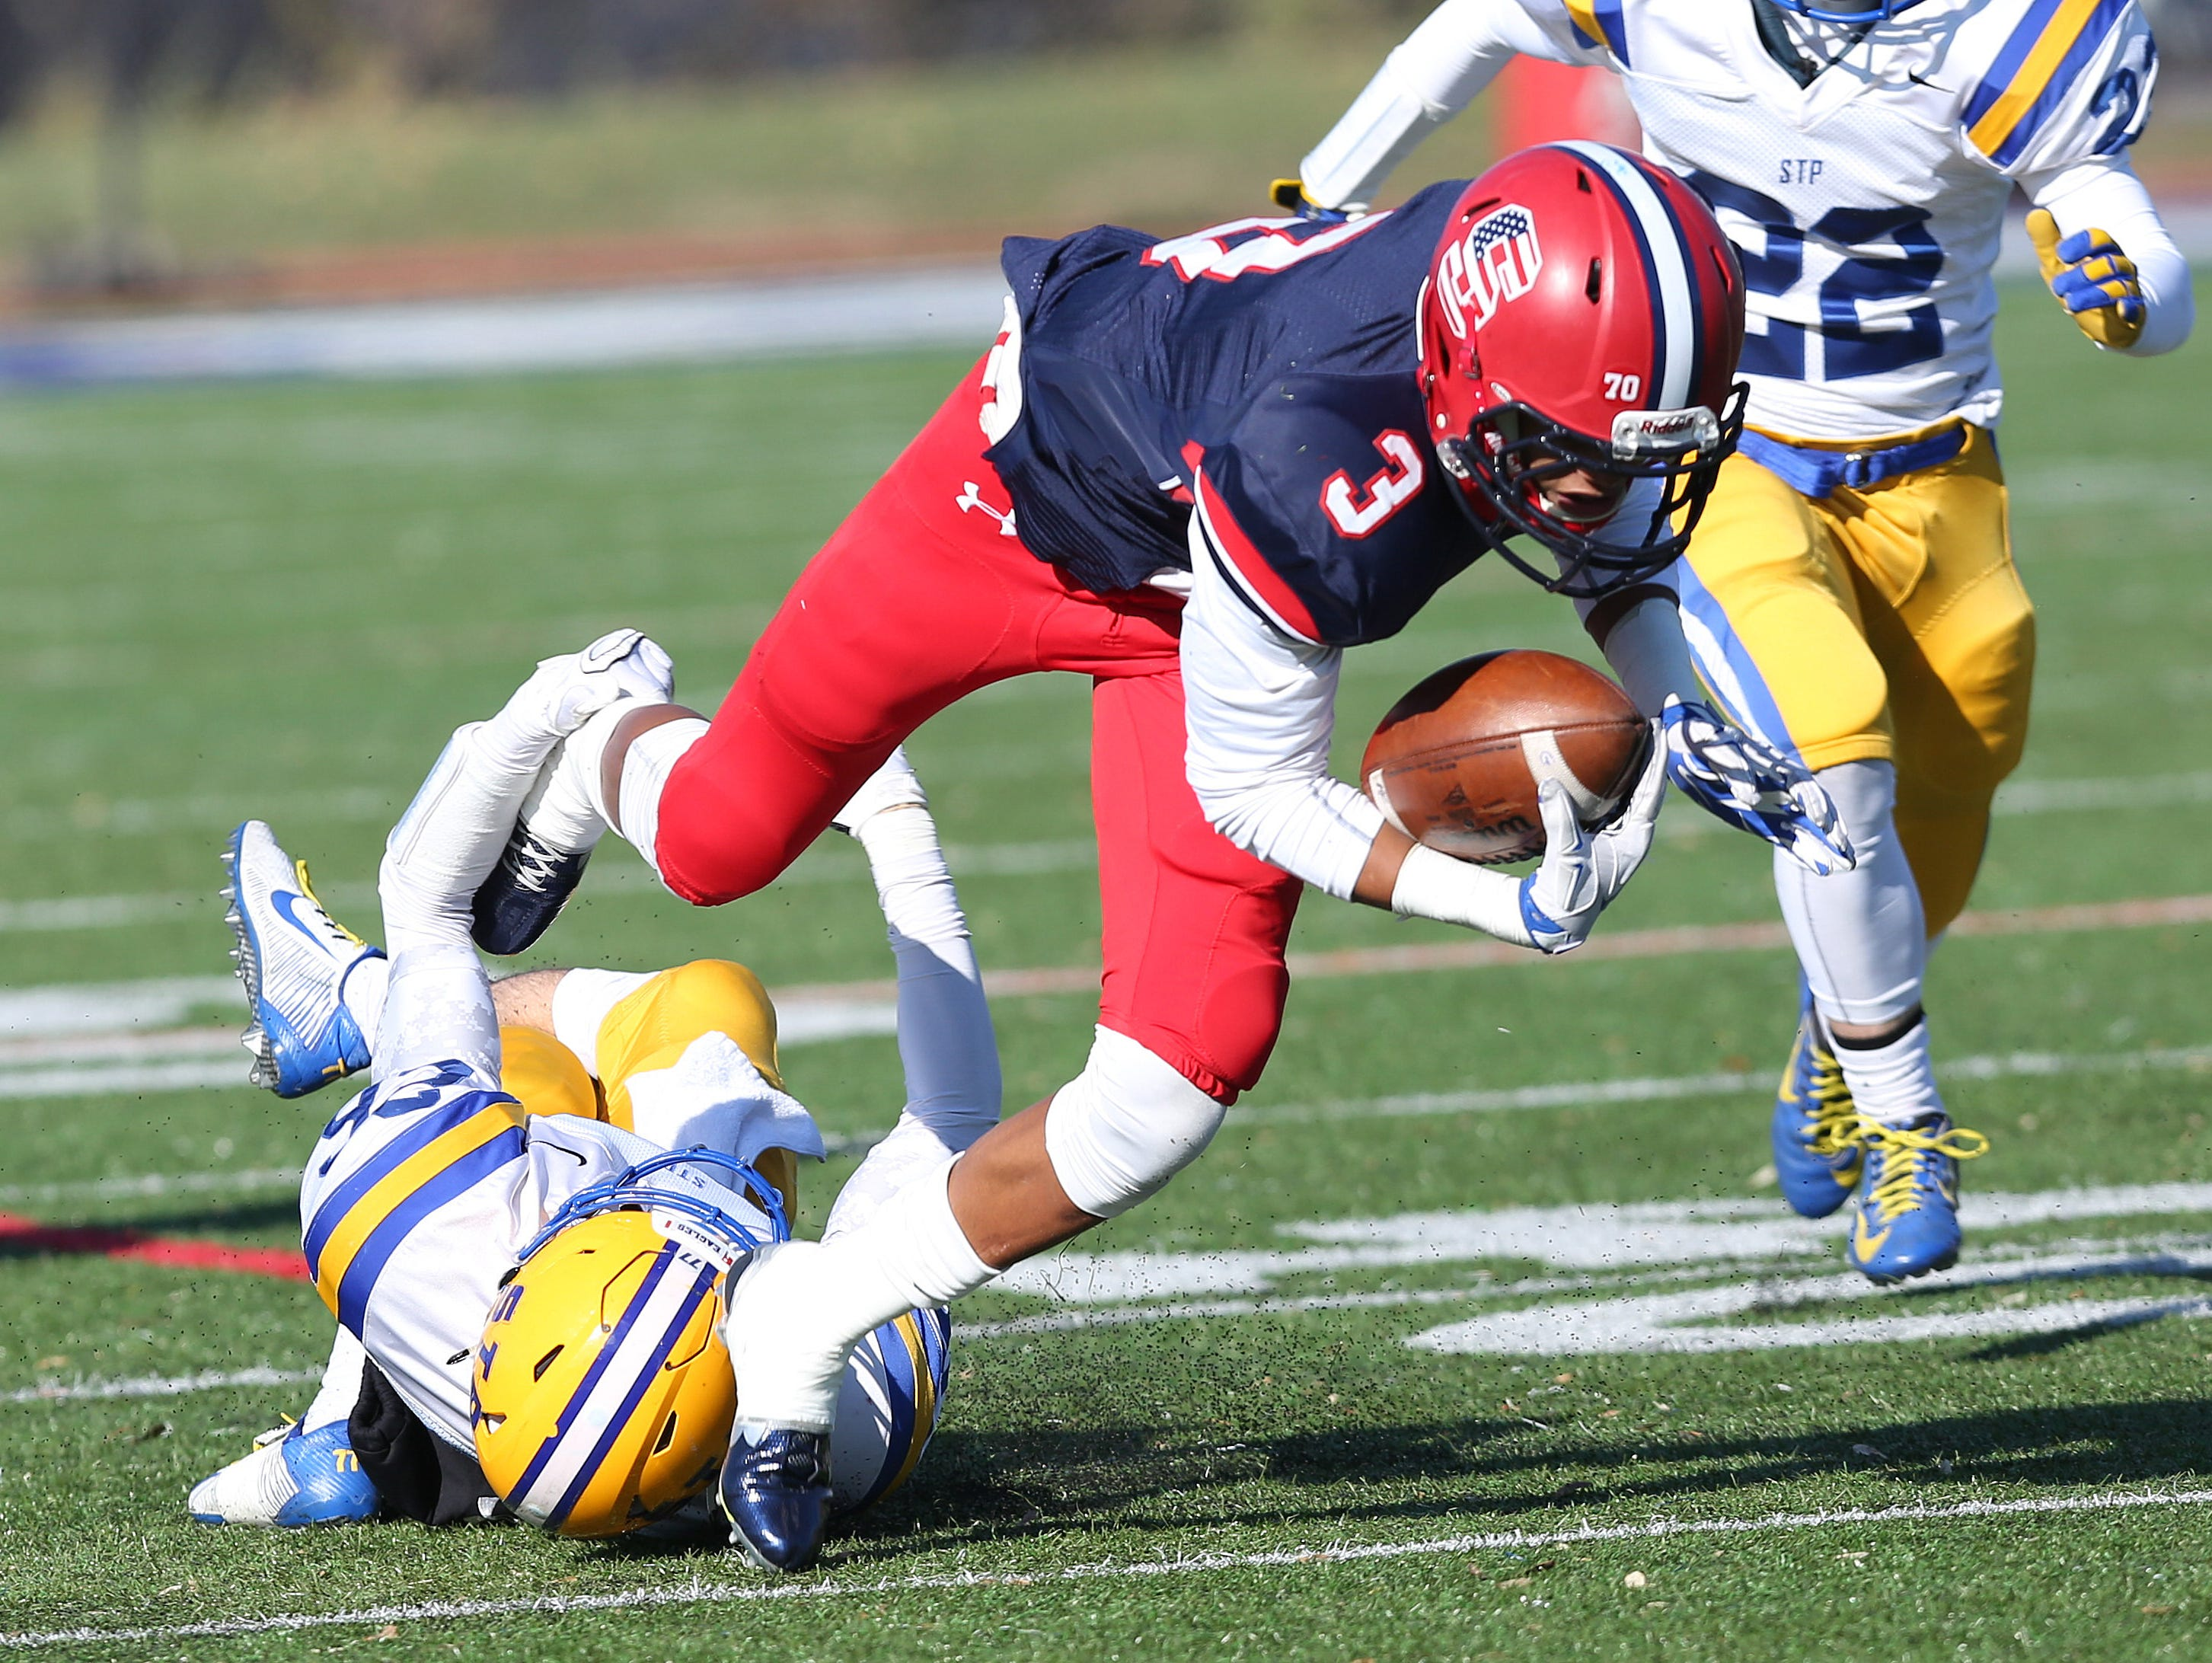 Stepinac's Jesse Brown (3) tries to break away from Saint Peter's Chris Fillippides (26) on a first quarter run during the NYCHSFL semifinals at Archbishop Stepinac High School in White Plains Nov 15, 2015. Stepinac won the game 49-7.